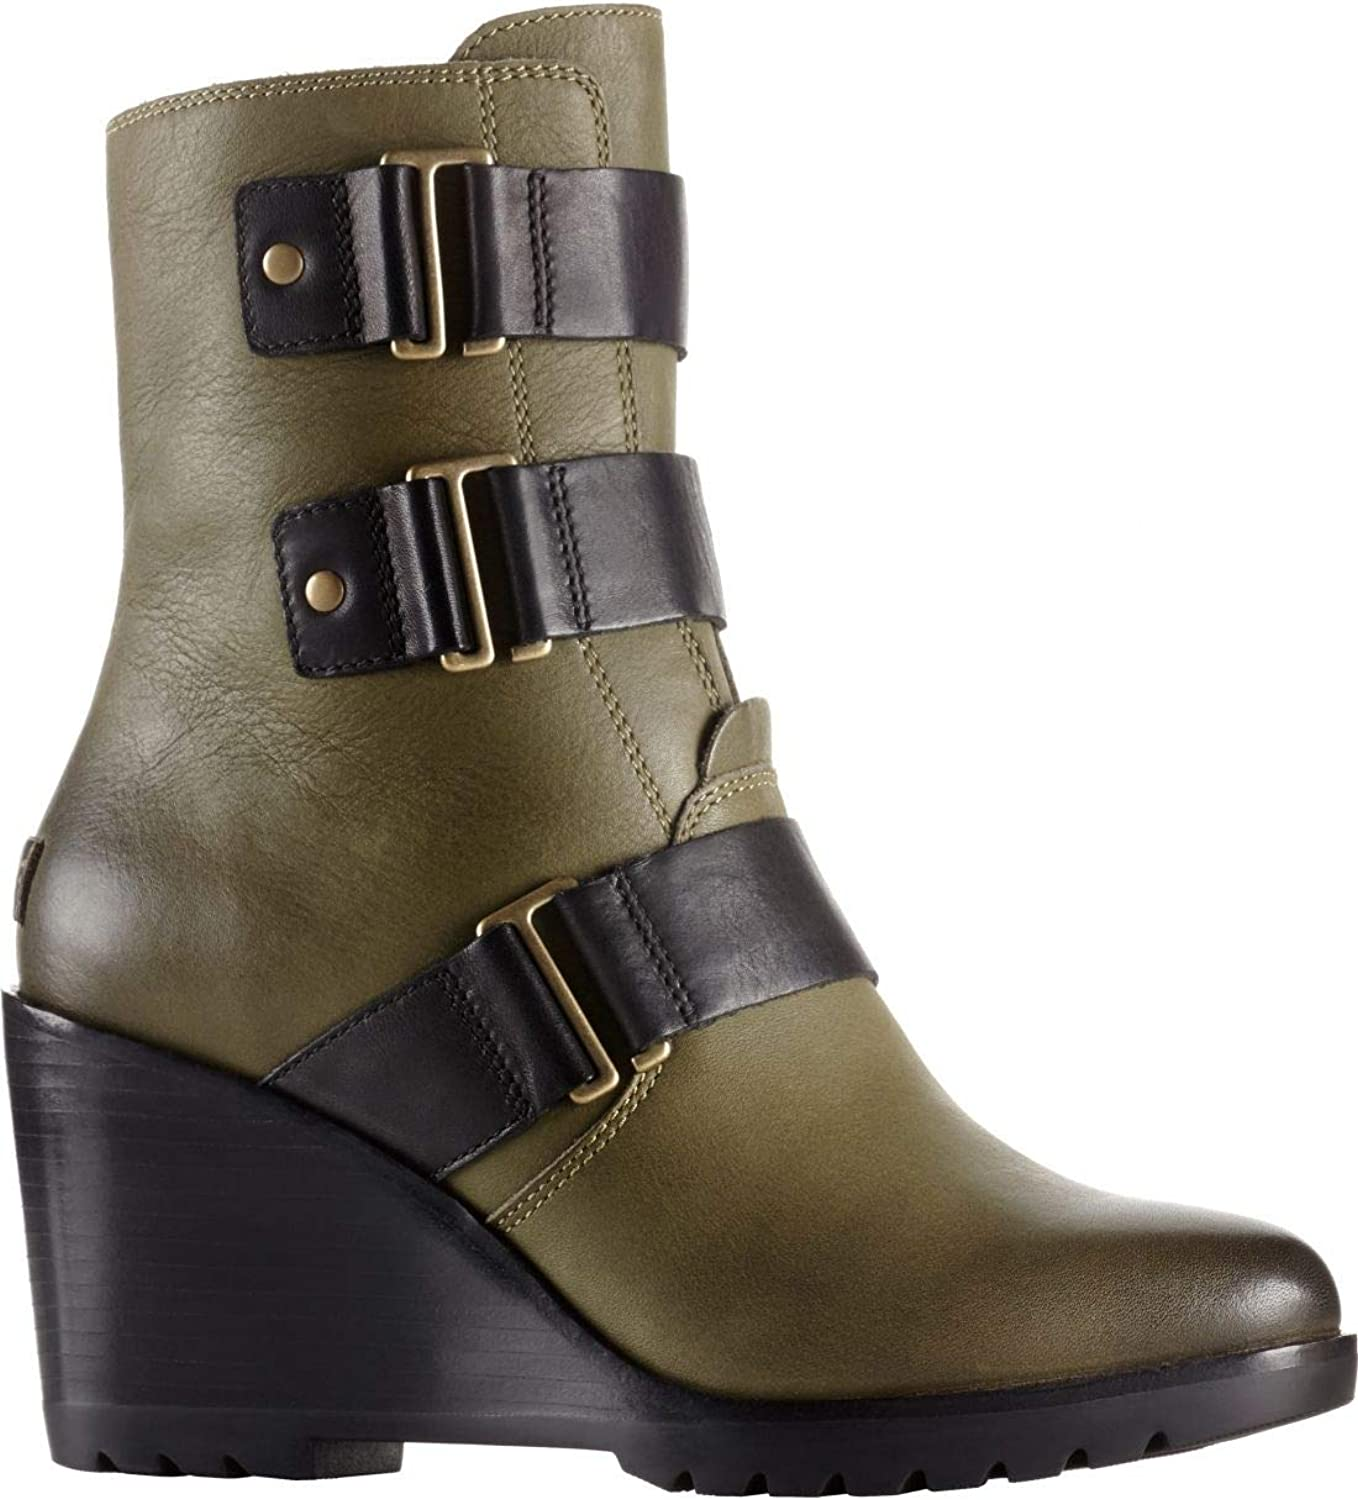 US, Nori 37-38 M EU // 6.5 B M SOREL Womens After Hours Bootie